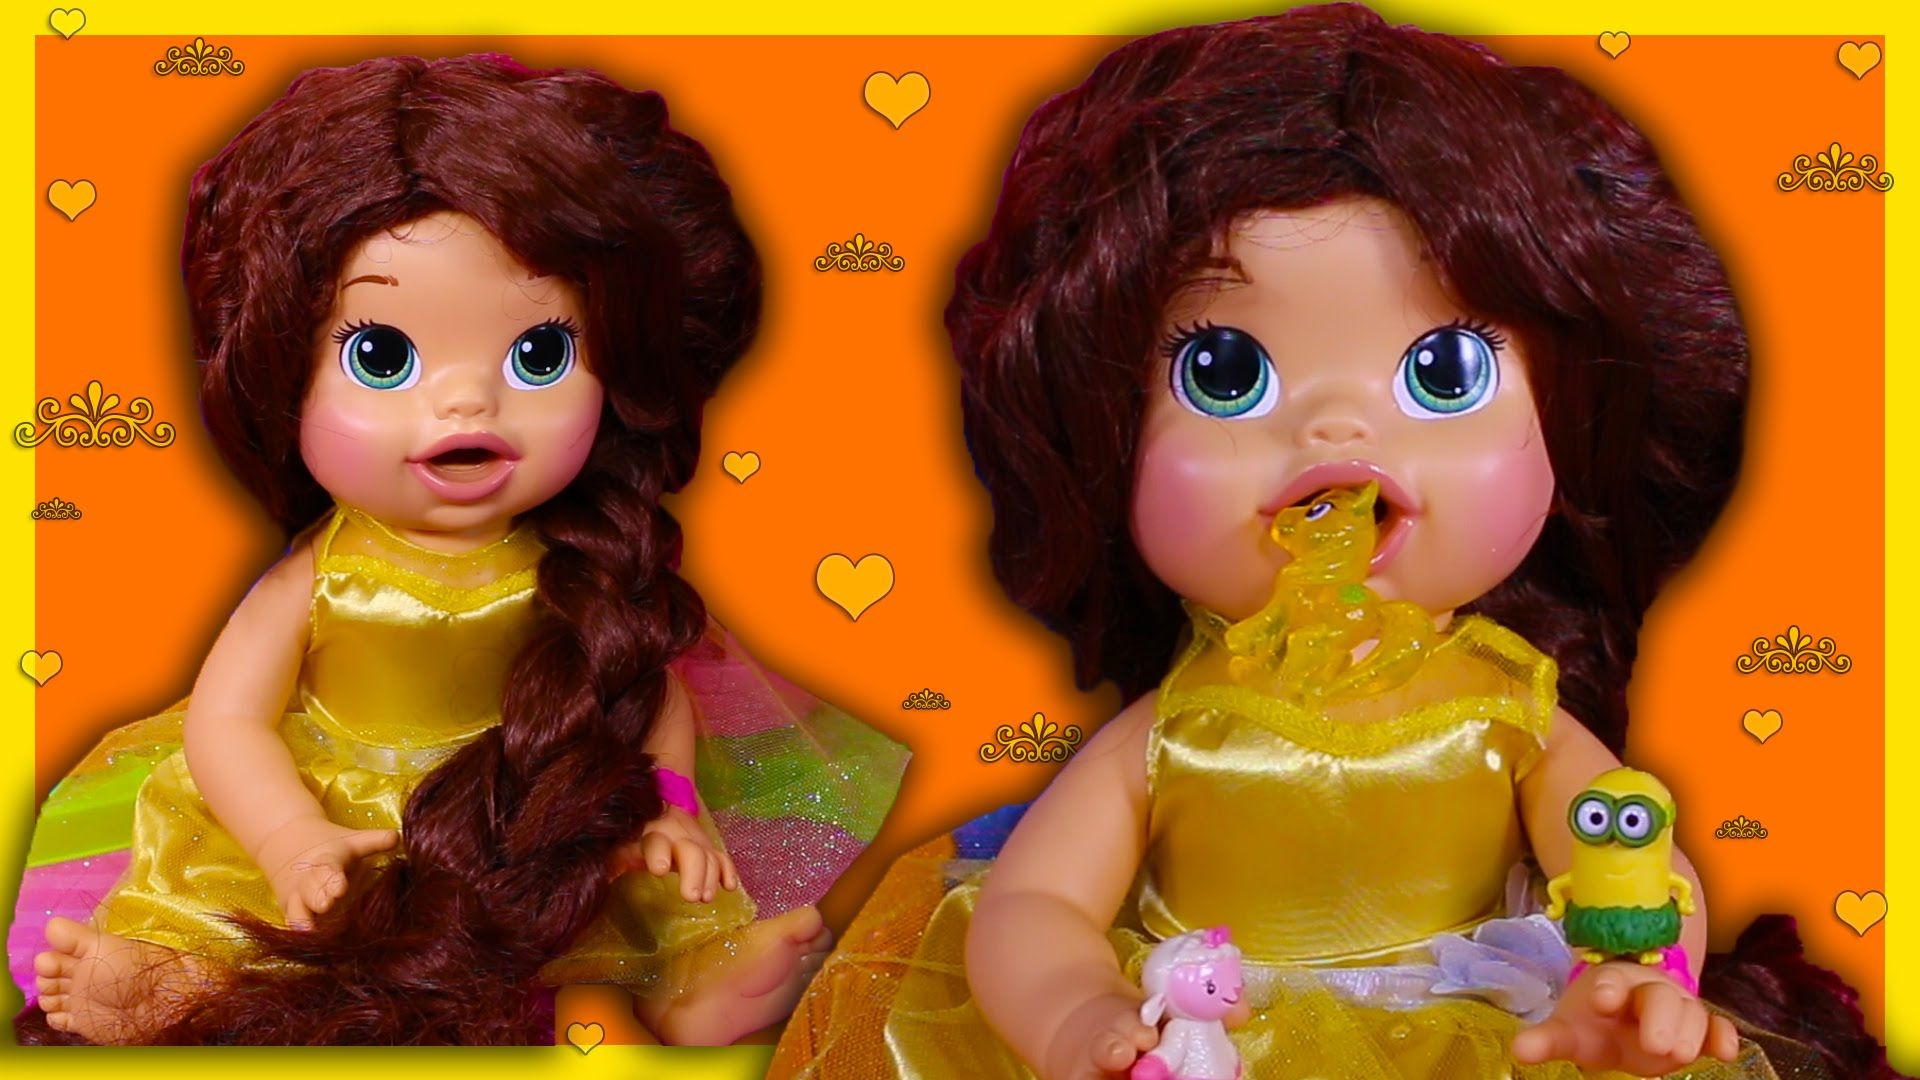 Belle Beauty And The Beast Custom Baby Alive Eats Play Doh Poops Surpris Baby Alive Belle Beauty And The Beast Beauty And The Beast